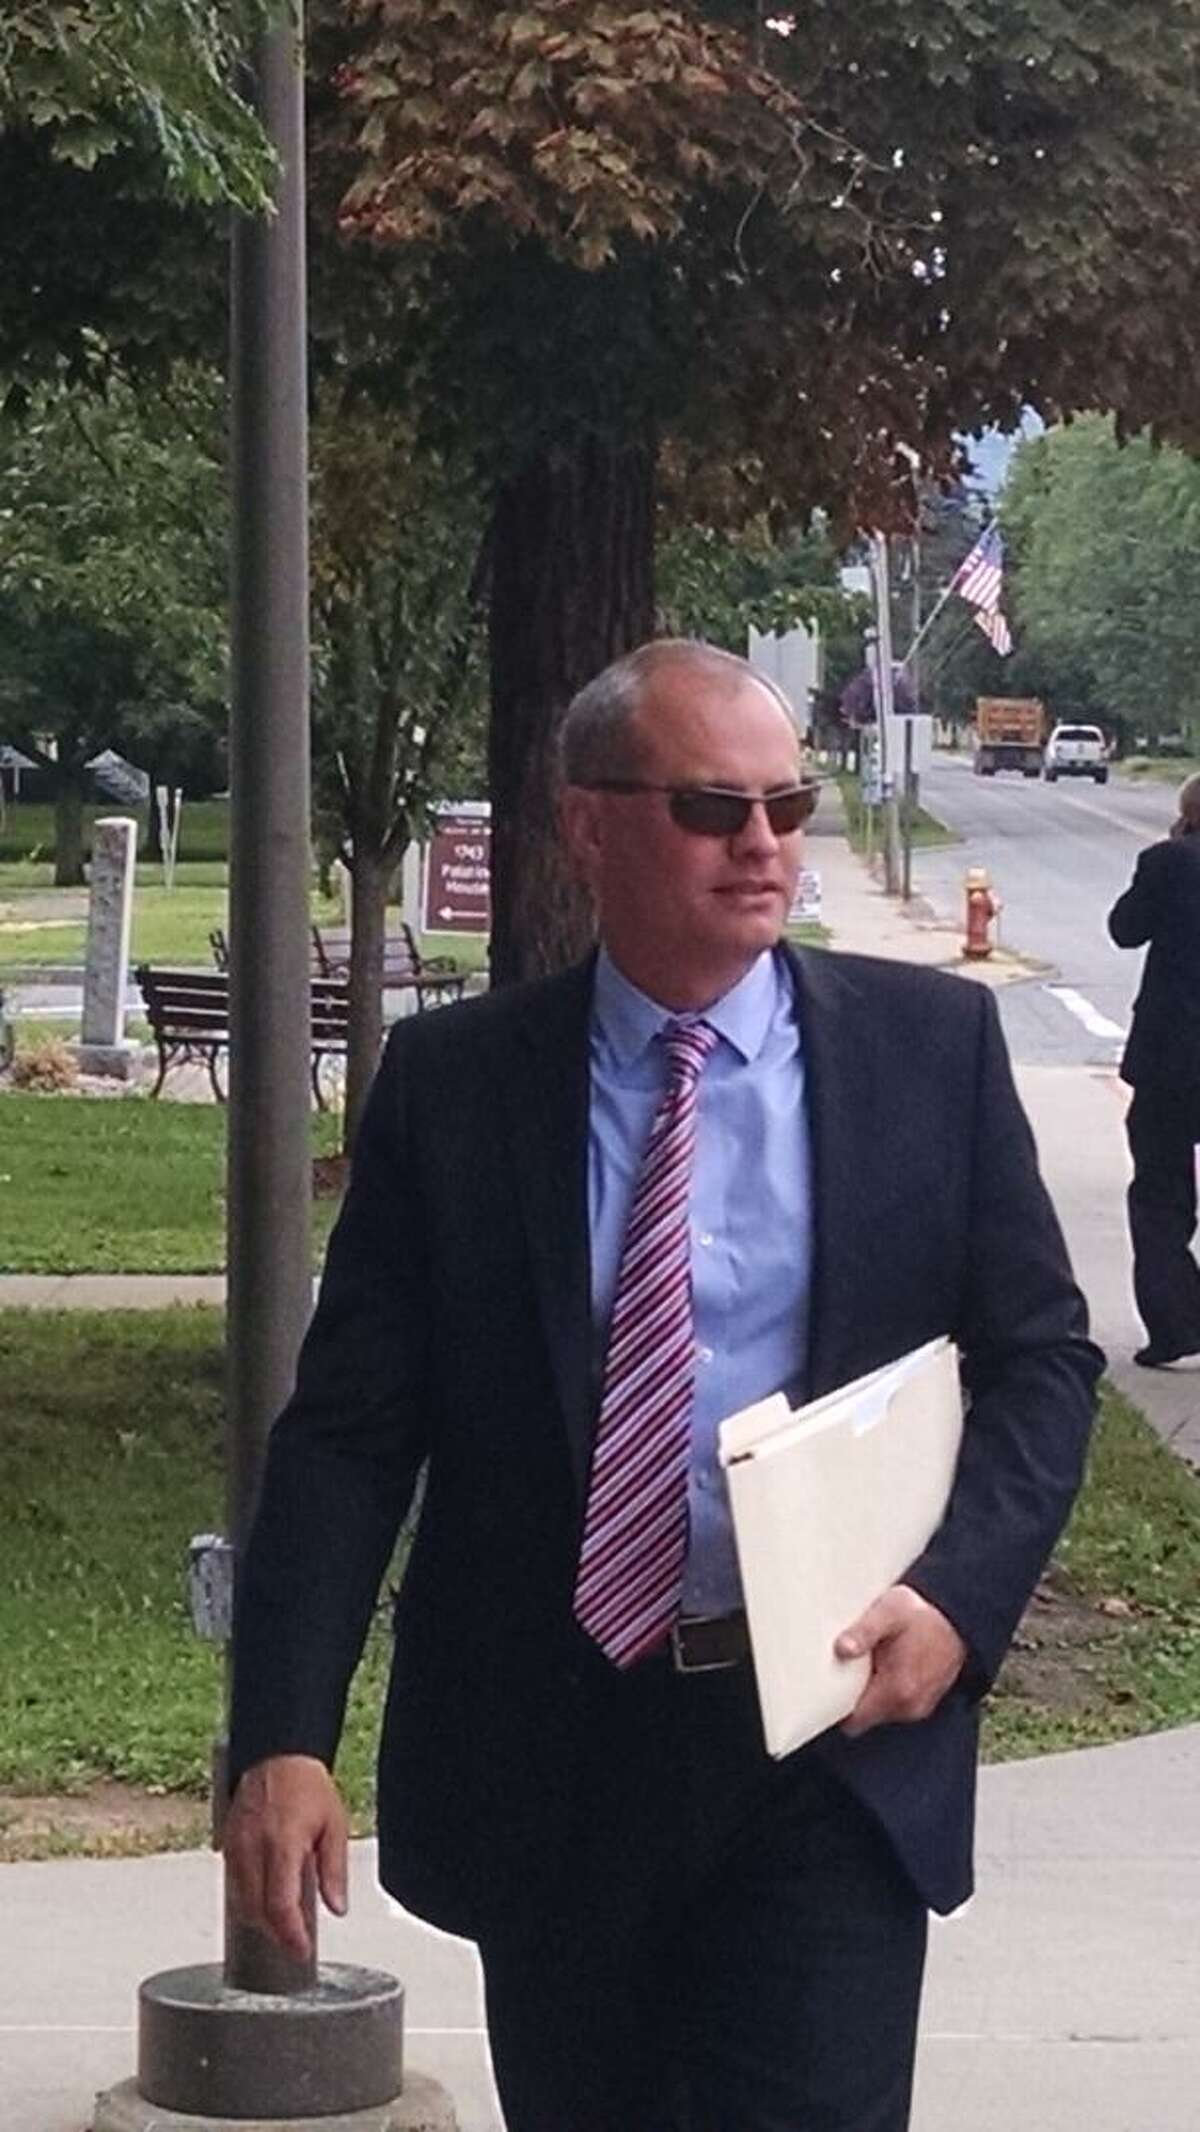 Tioga County District Attorney Kirk Martin walks into Schoharie County Court for conference on a potential fourth trial for Cal Harris, the Binghamton-area man accused of killing his wife on Sept. 11, 2001. (Robert Gavin / Times Union)